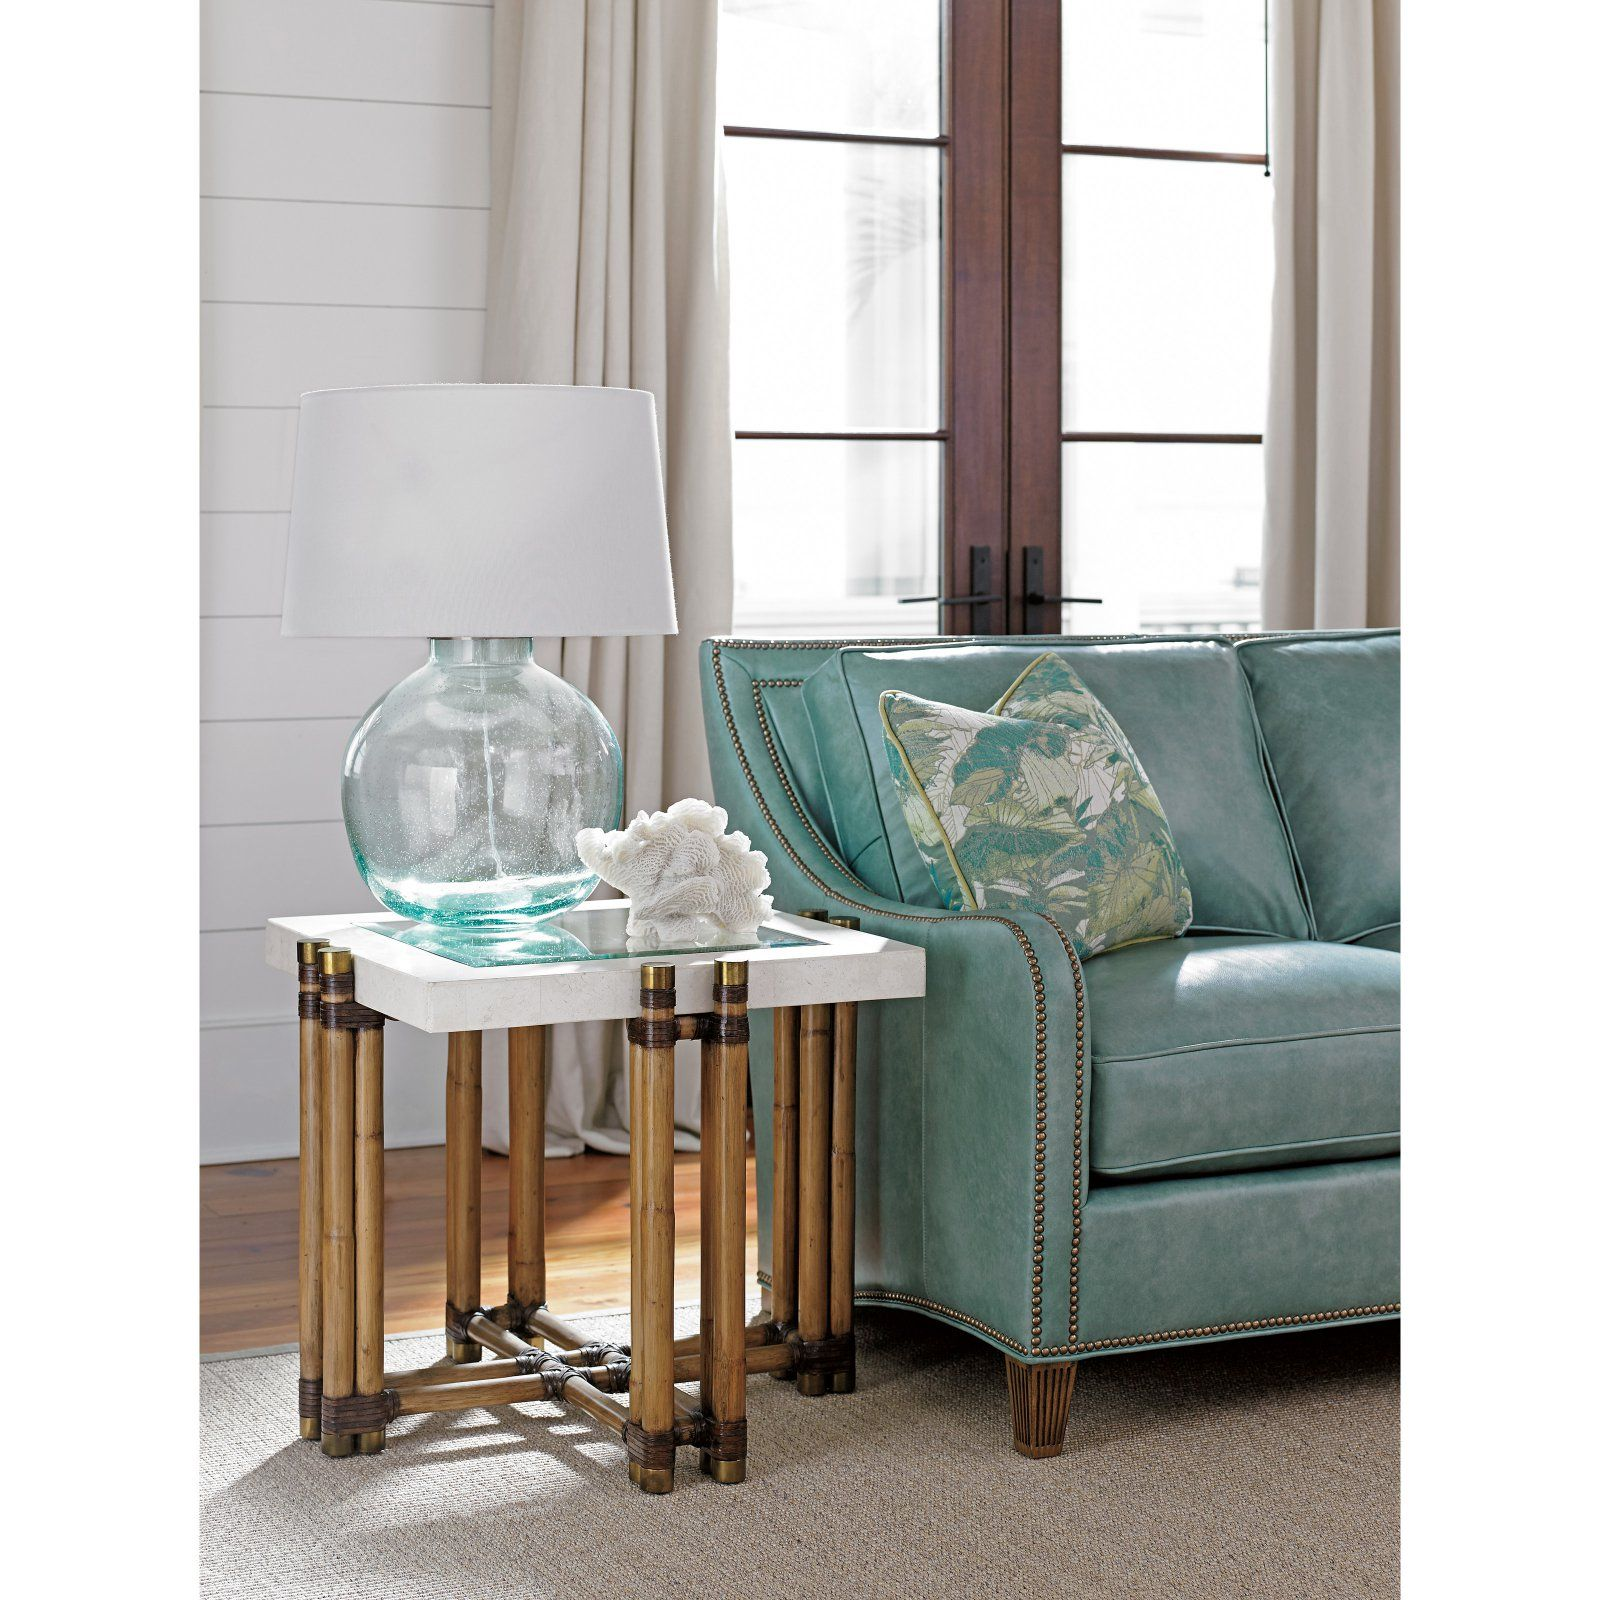 Tommy Bahama Los Cabos Lamp Table Living room table